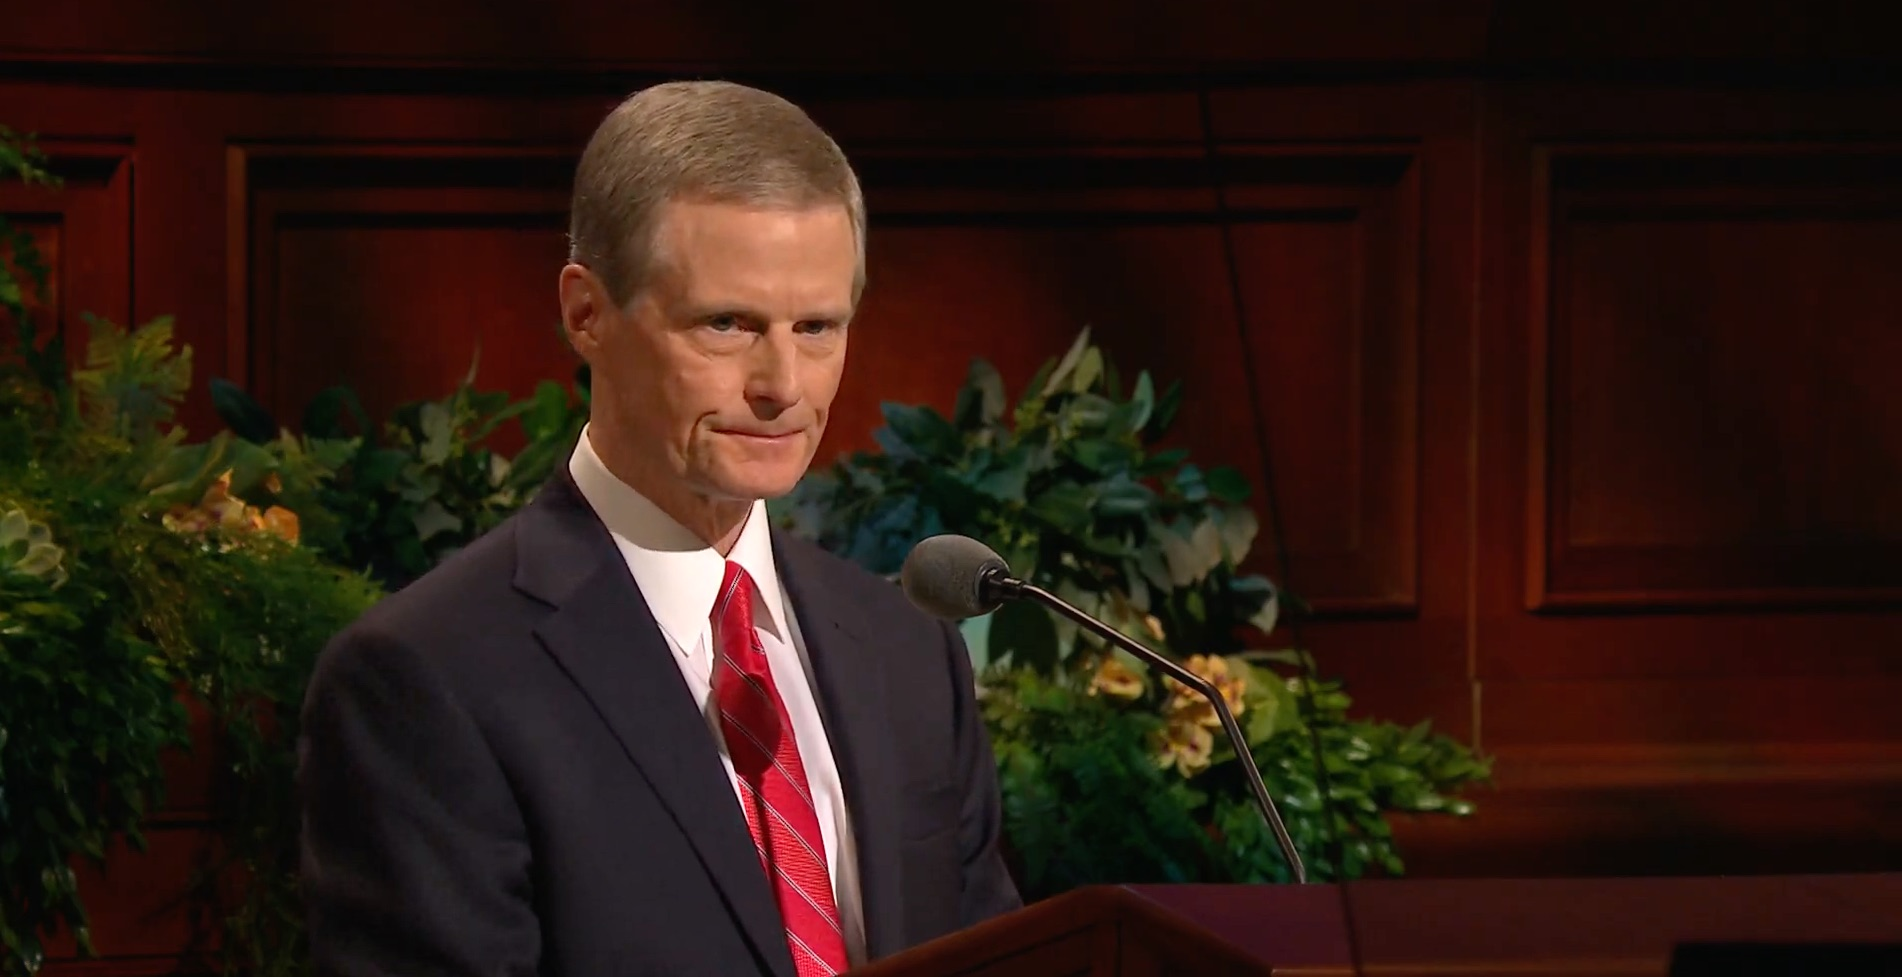 Elder David A. Bednar of the Quorum of the Twelve Apostles gives his address during the Sunday afternoon session of the 189th Annual General Conference on April 7, 2019.